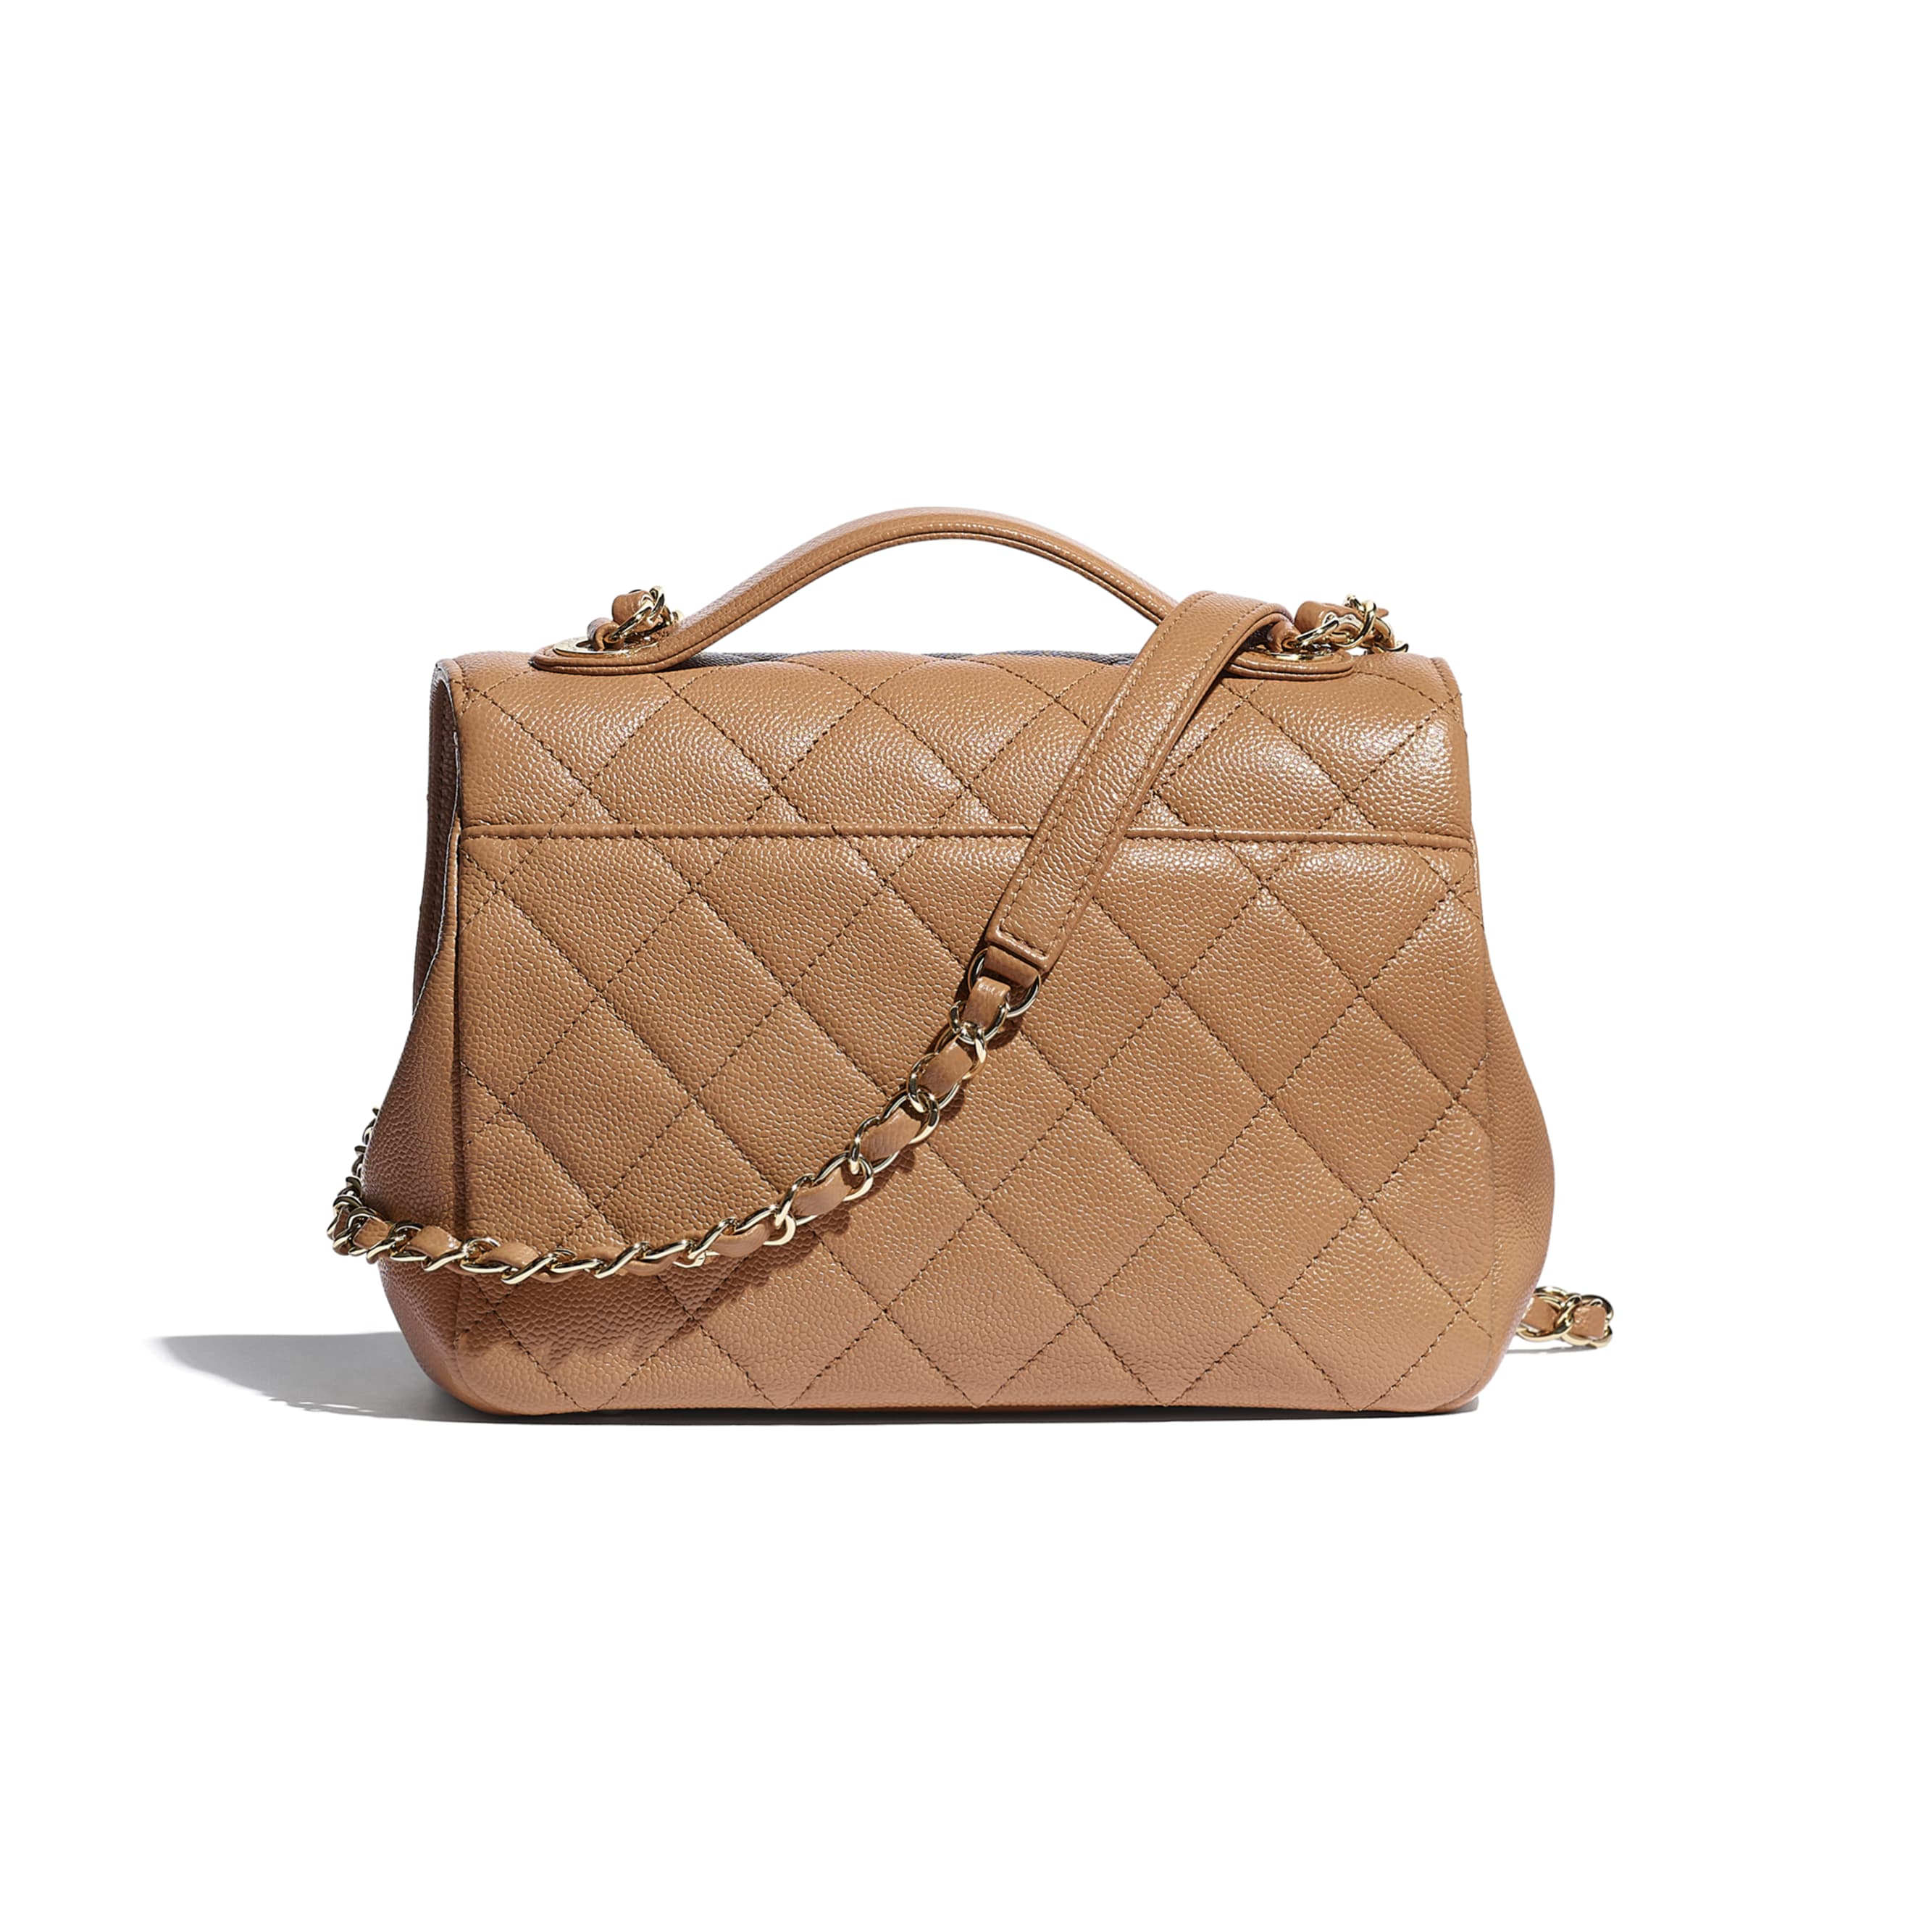 Flap Bag With Top Handle - Brown - Grained Calfskin & Gold-Tone Metal - CHANEL - Alternative view - see standard sized version